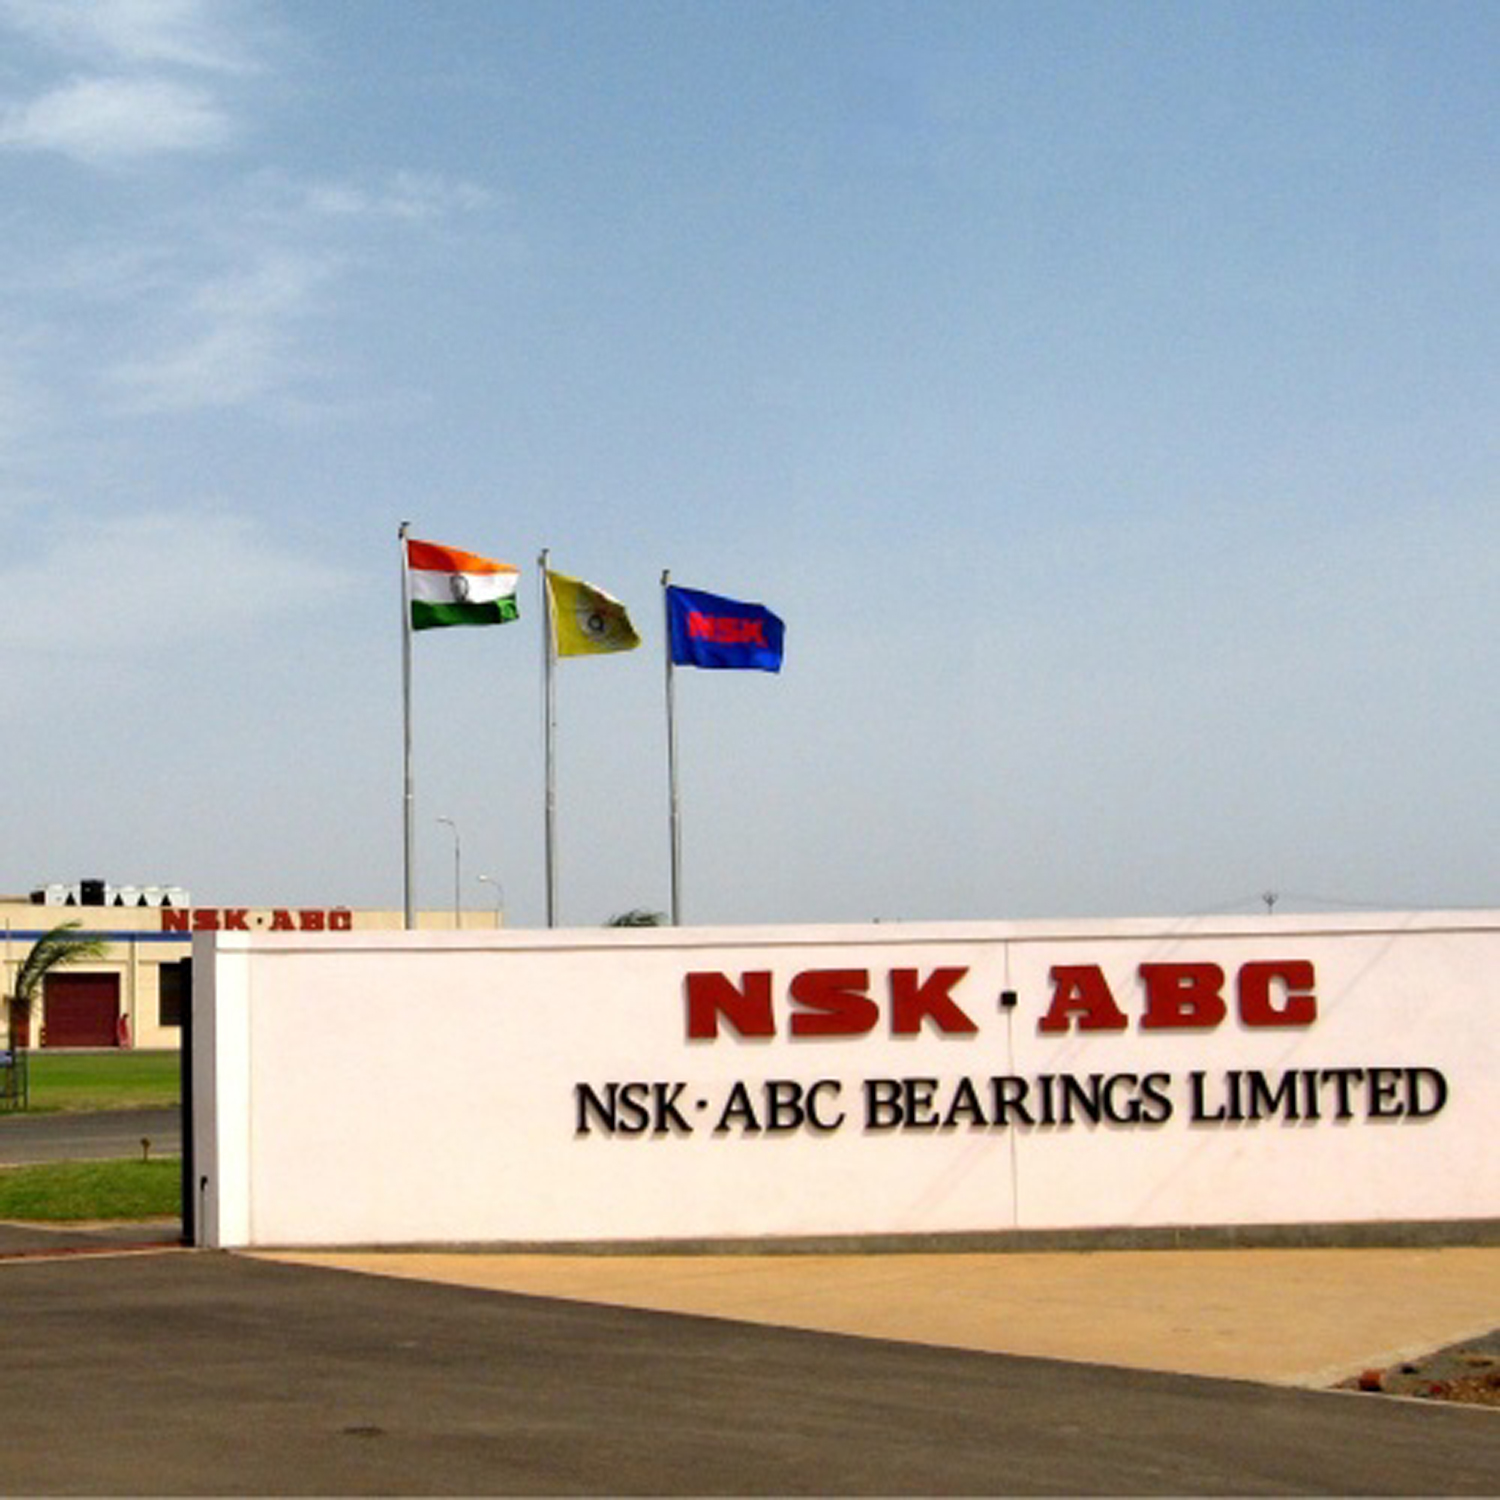 NSK INCREASES CAPITAL STAKE IN ABD BEARINGS LIMITED TO FURTHER EXPAND ITS BEARING BUSINESS INDIA